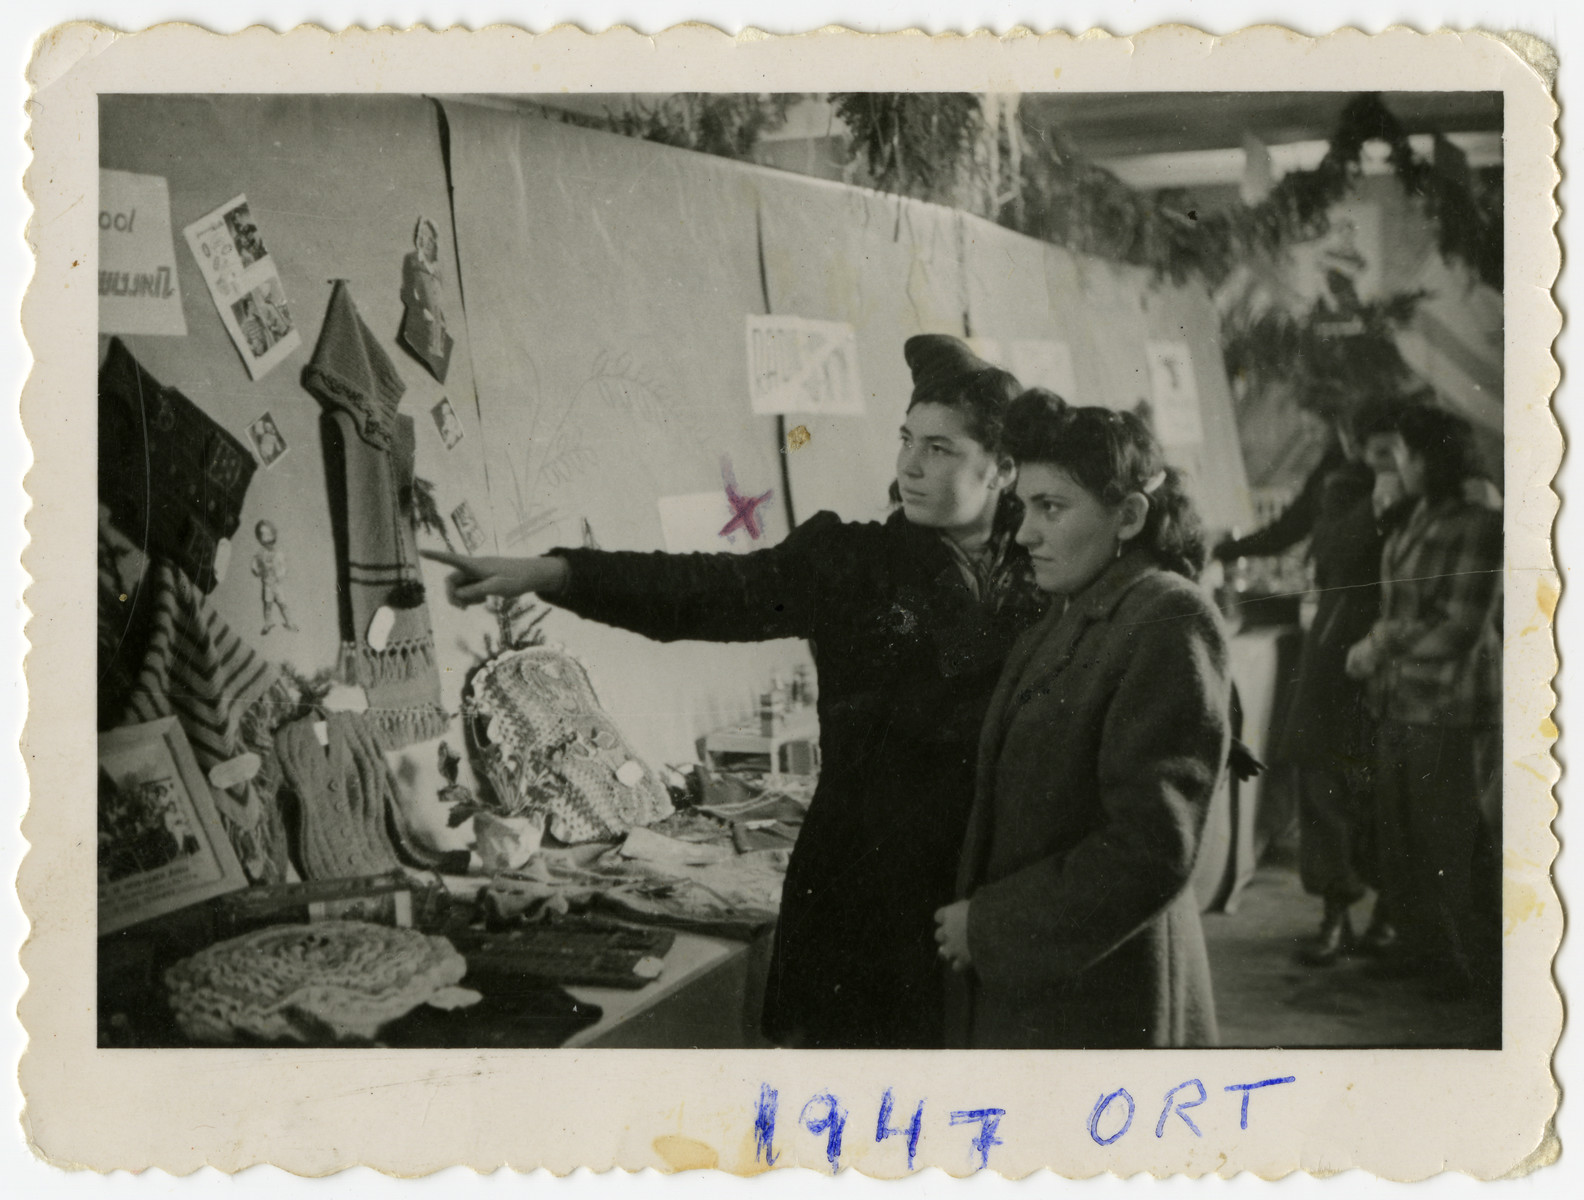 Sally Korn and a friend view a display of knitwear in the ORT exhibition in the Foehrenwald displaced person's camp.